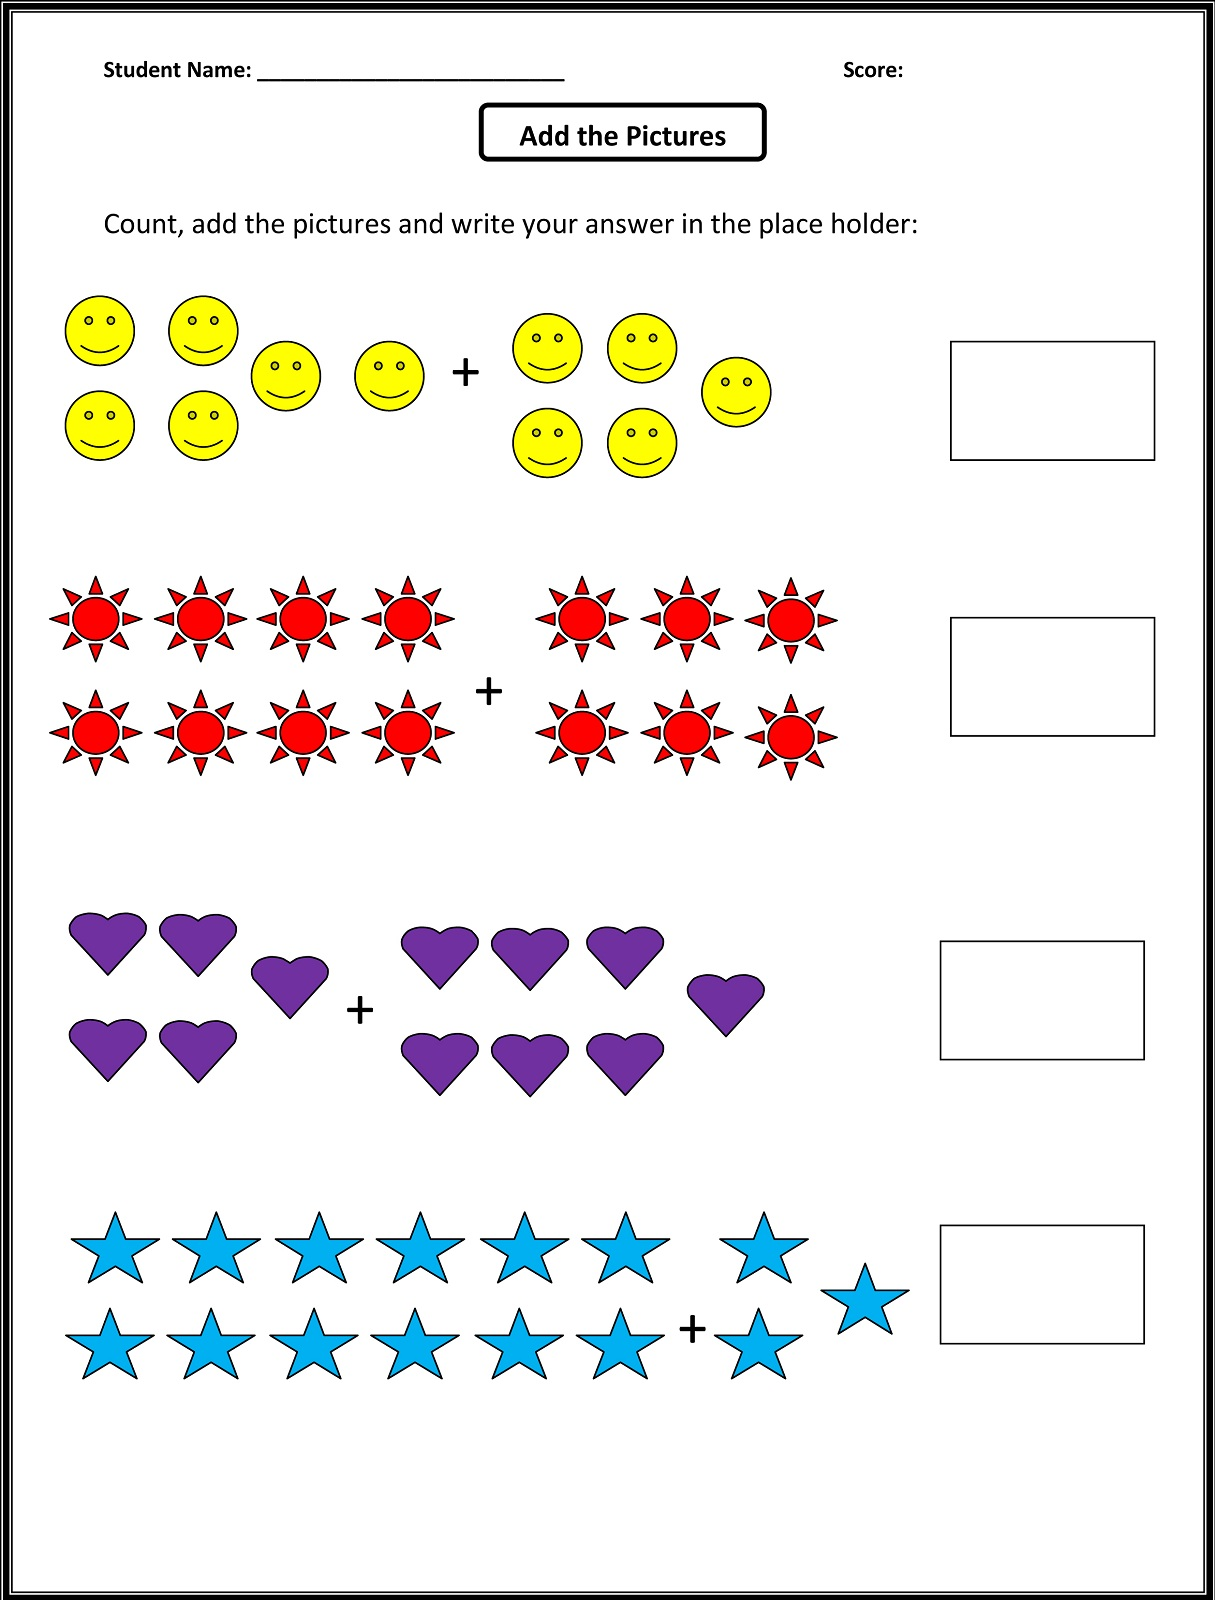 worksheet Science Worksheets For 1st Grade 1st grade science worksheets free abitlikethis for math activity shelter